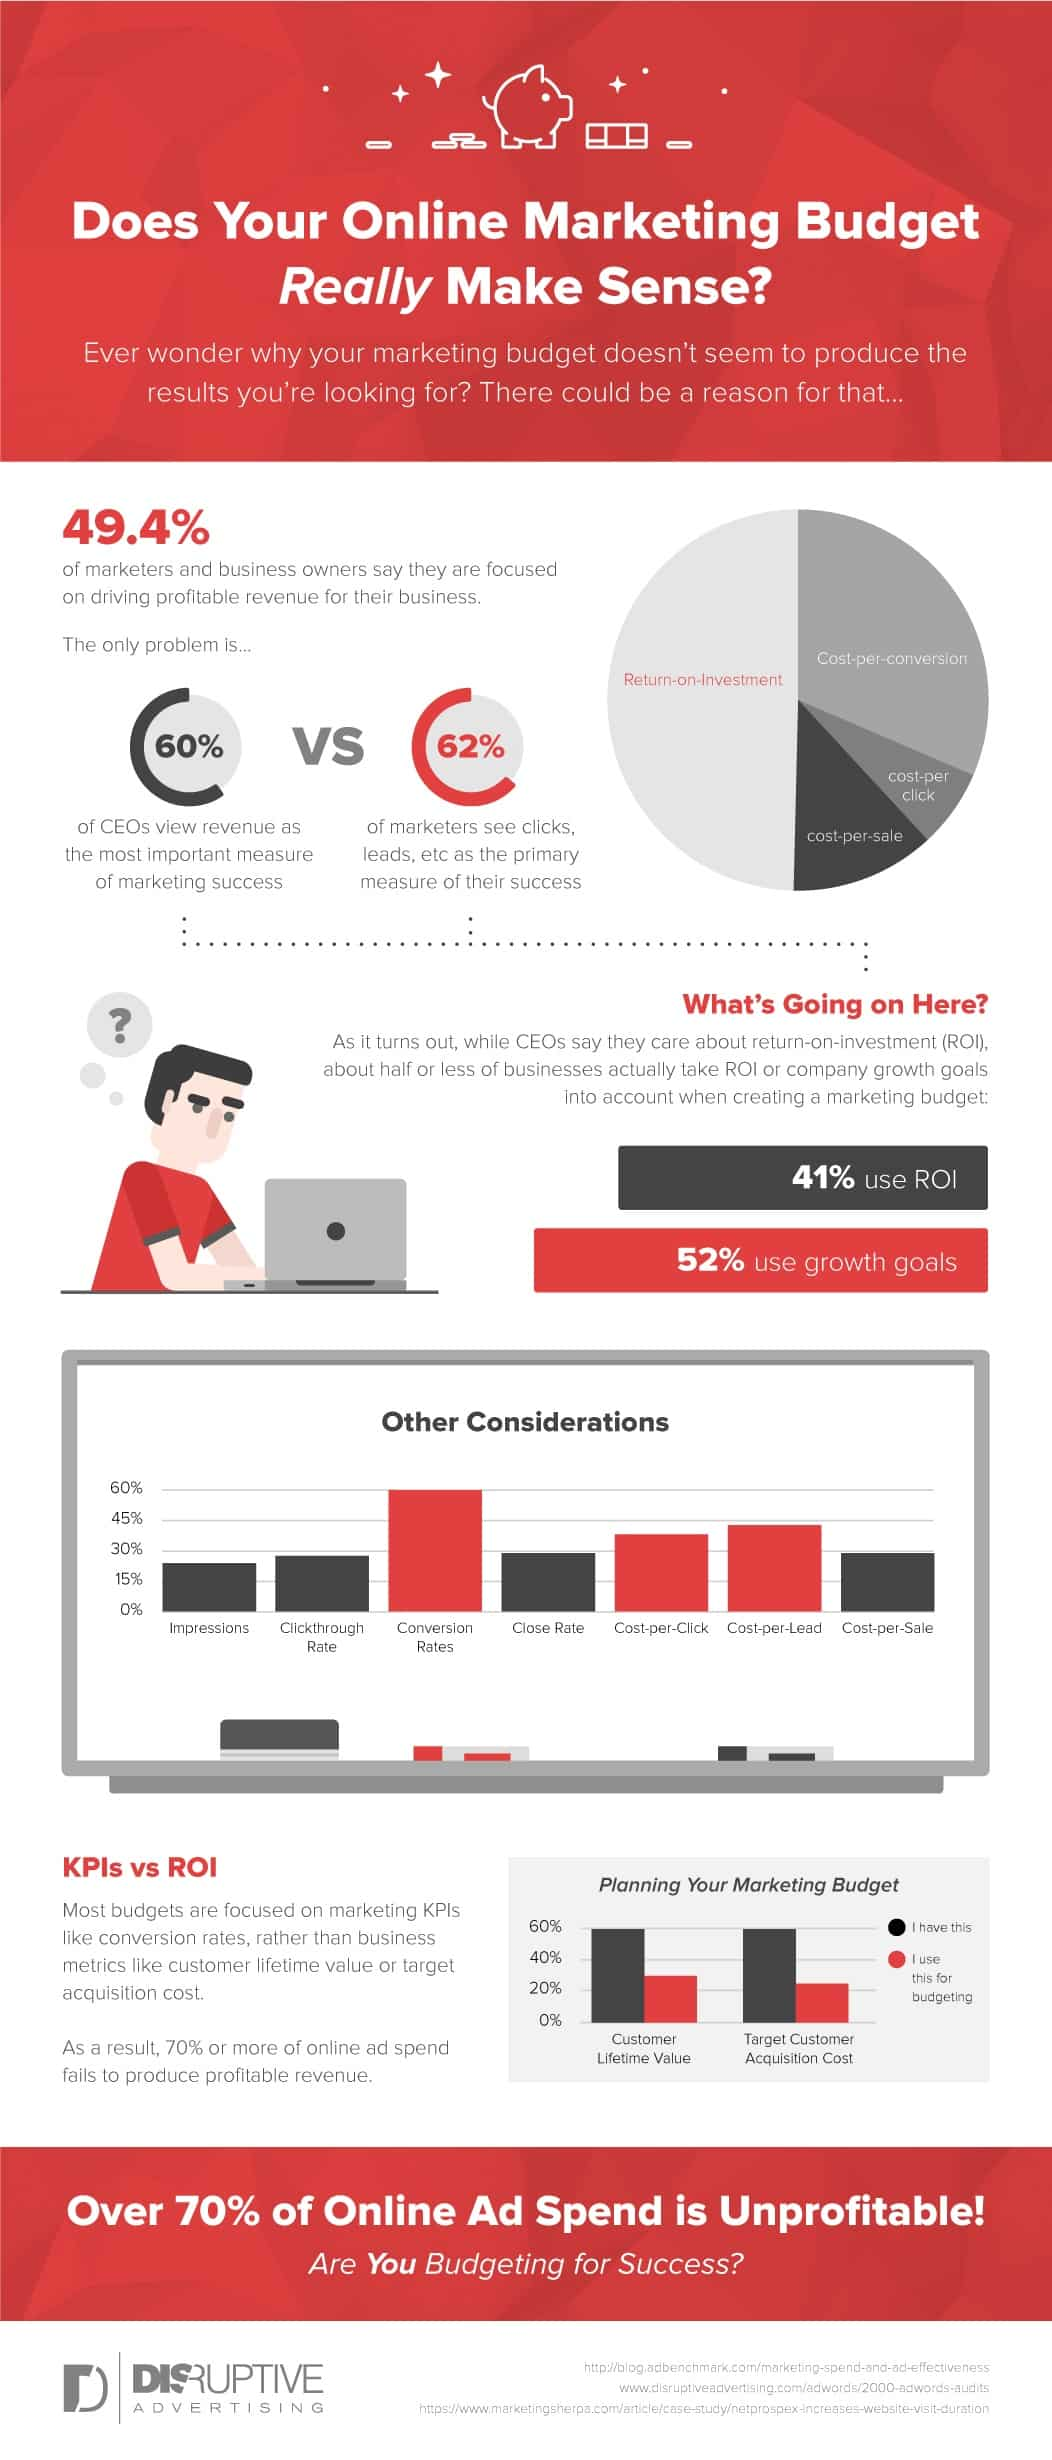 Does Your Online Marketing Budget Really Make Sense [INFOGRAPHIC]   Disruptive Advertising